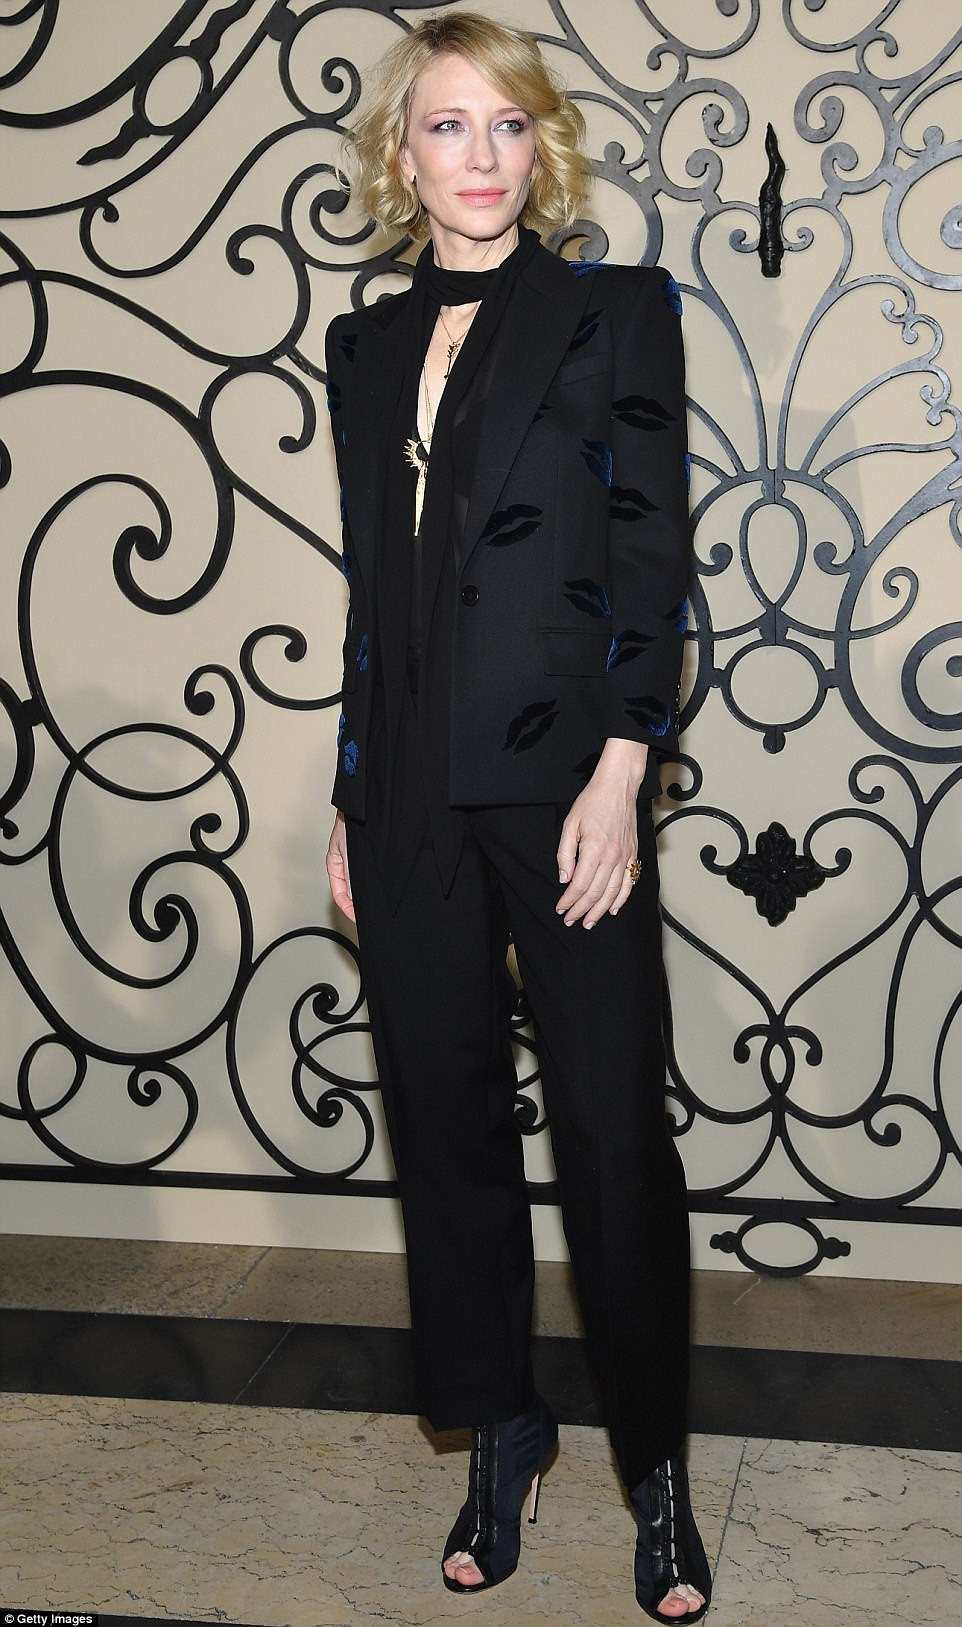 Getting lippy: Cate Blanchett later added to the fray in a black jumpsuit and blazer - adorned with the playful embroidered images of lips all over, in contrasting blue velvet